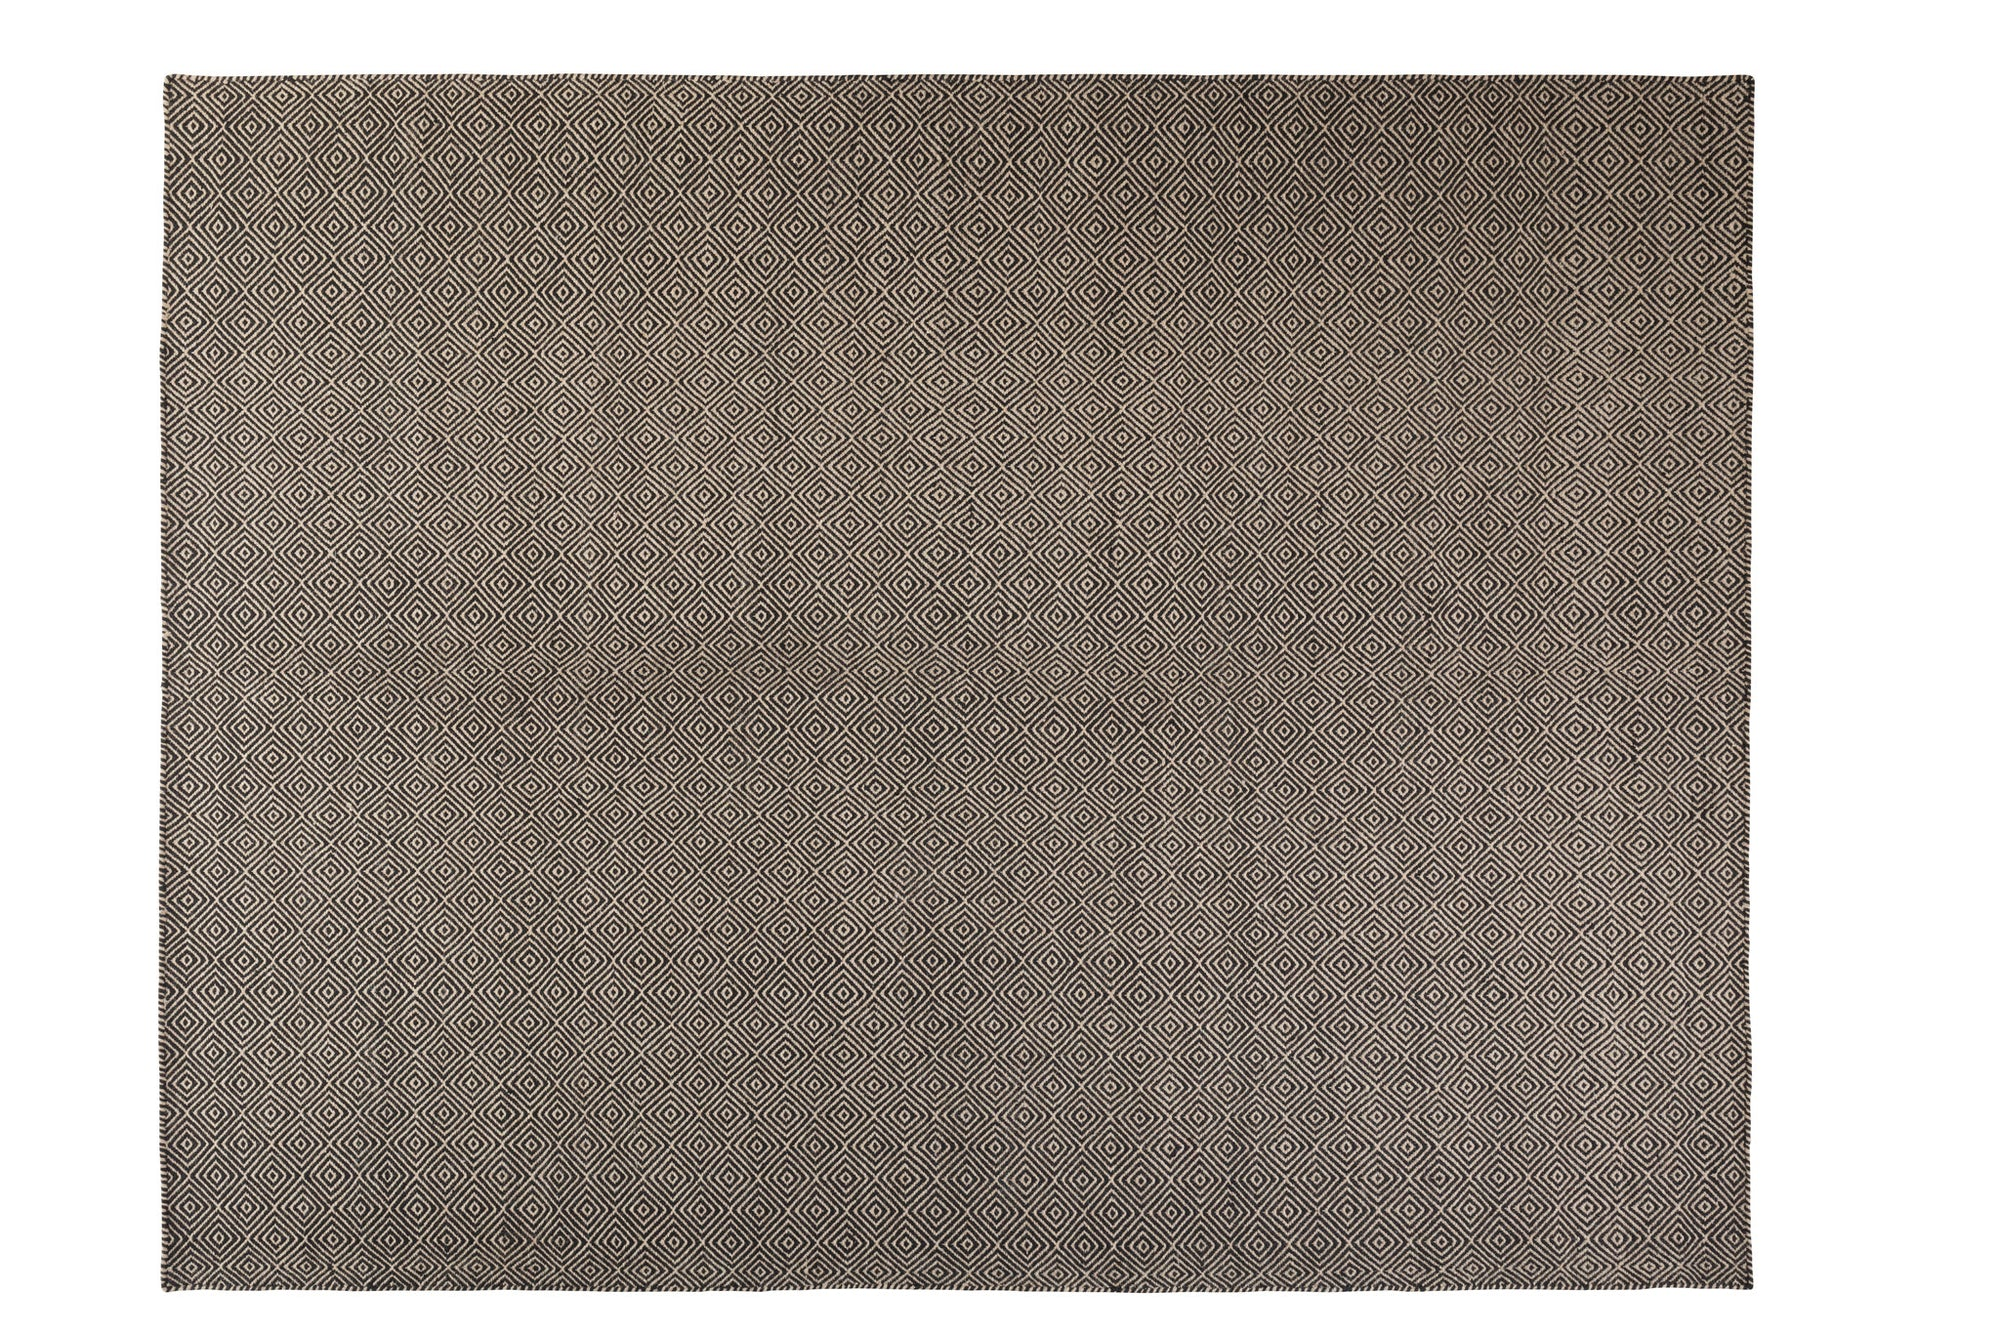 Herm - Diamond Toupe/Black 100% Wool Scandinavian Area Rug